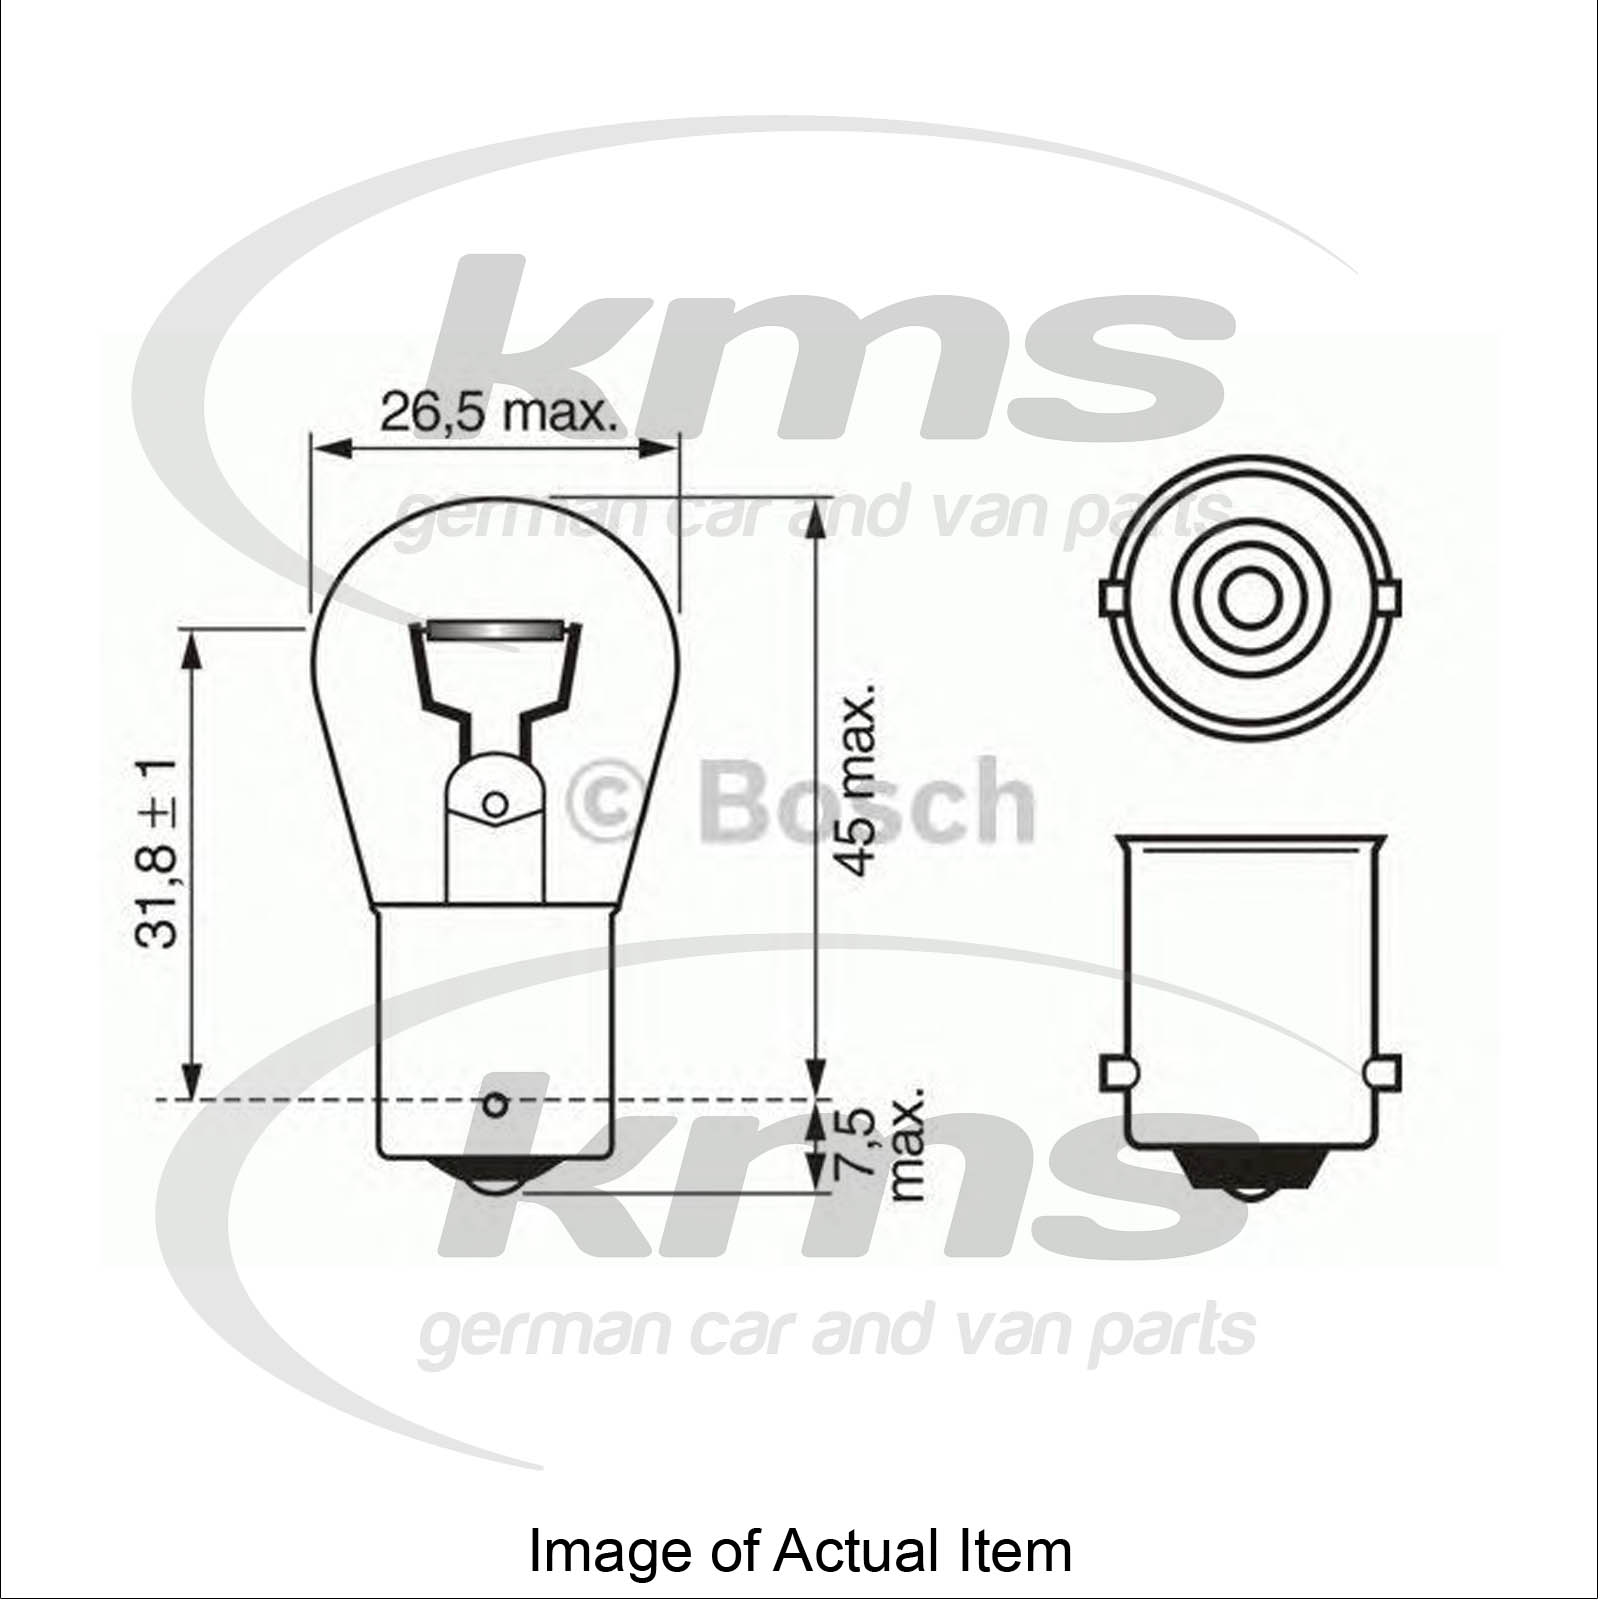 Bulb For rear fog light VW NEW BEETLE Convertible (1Y7) 1.9 TDI.